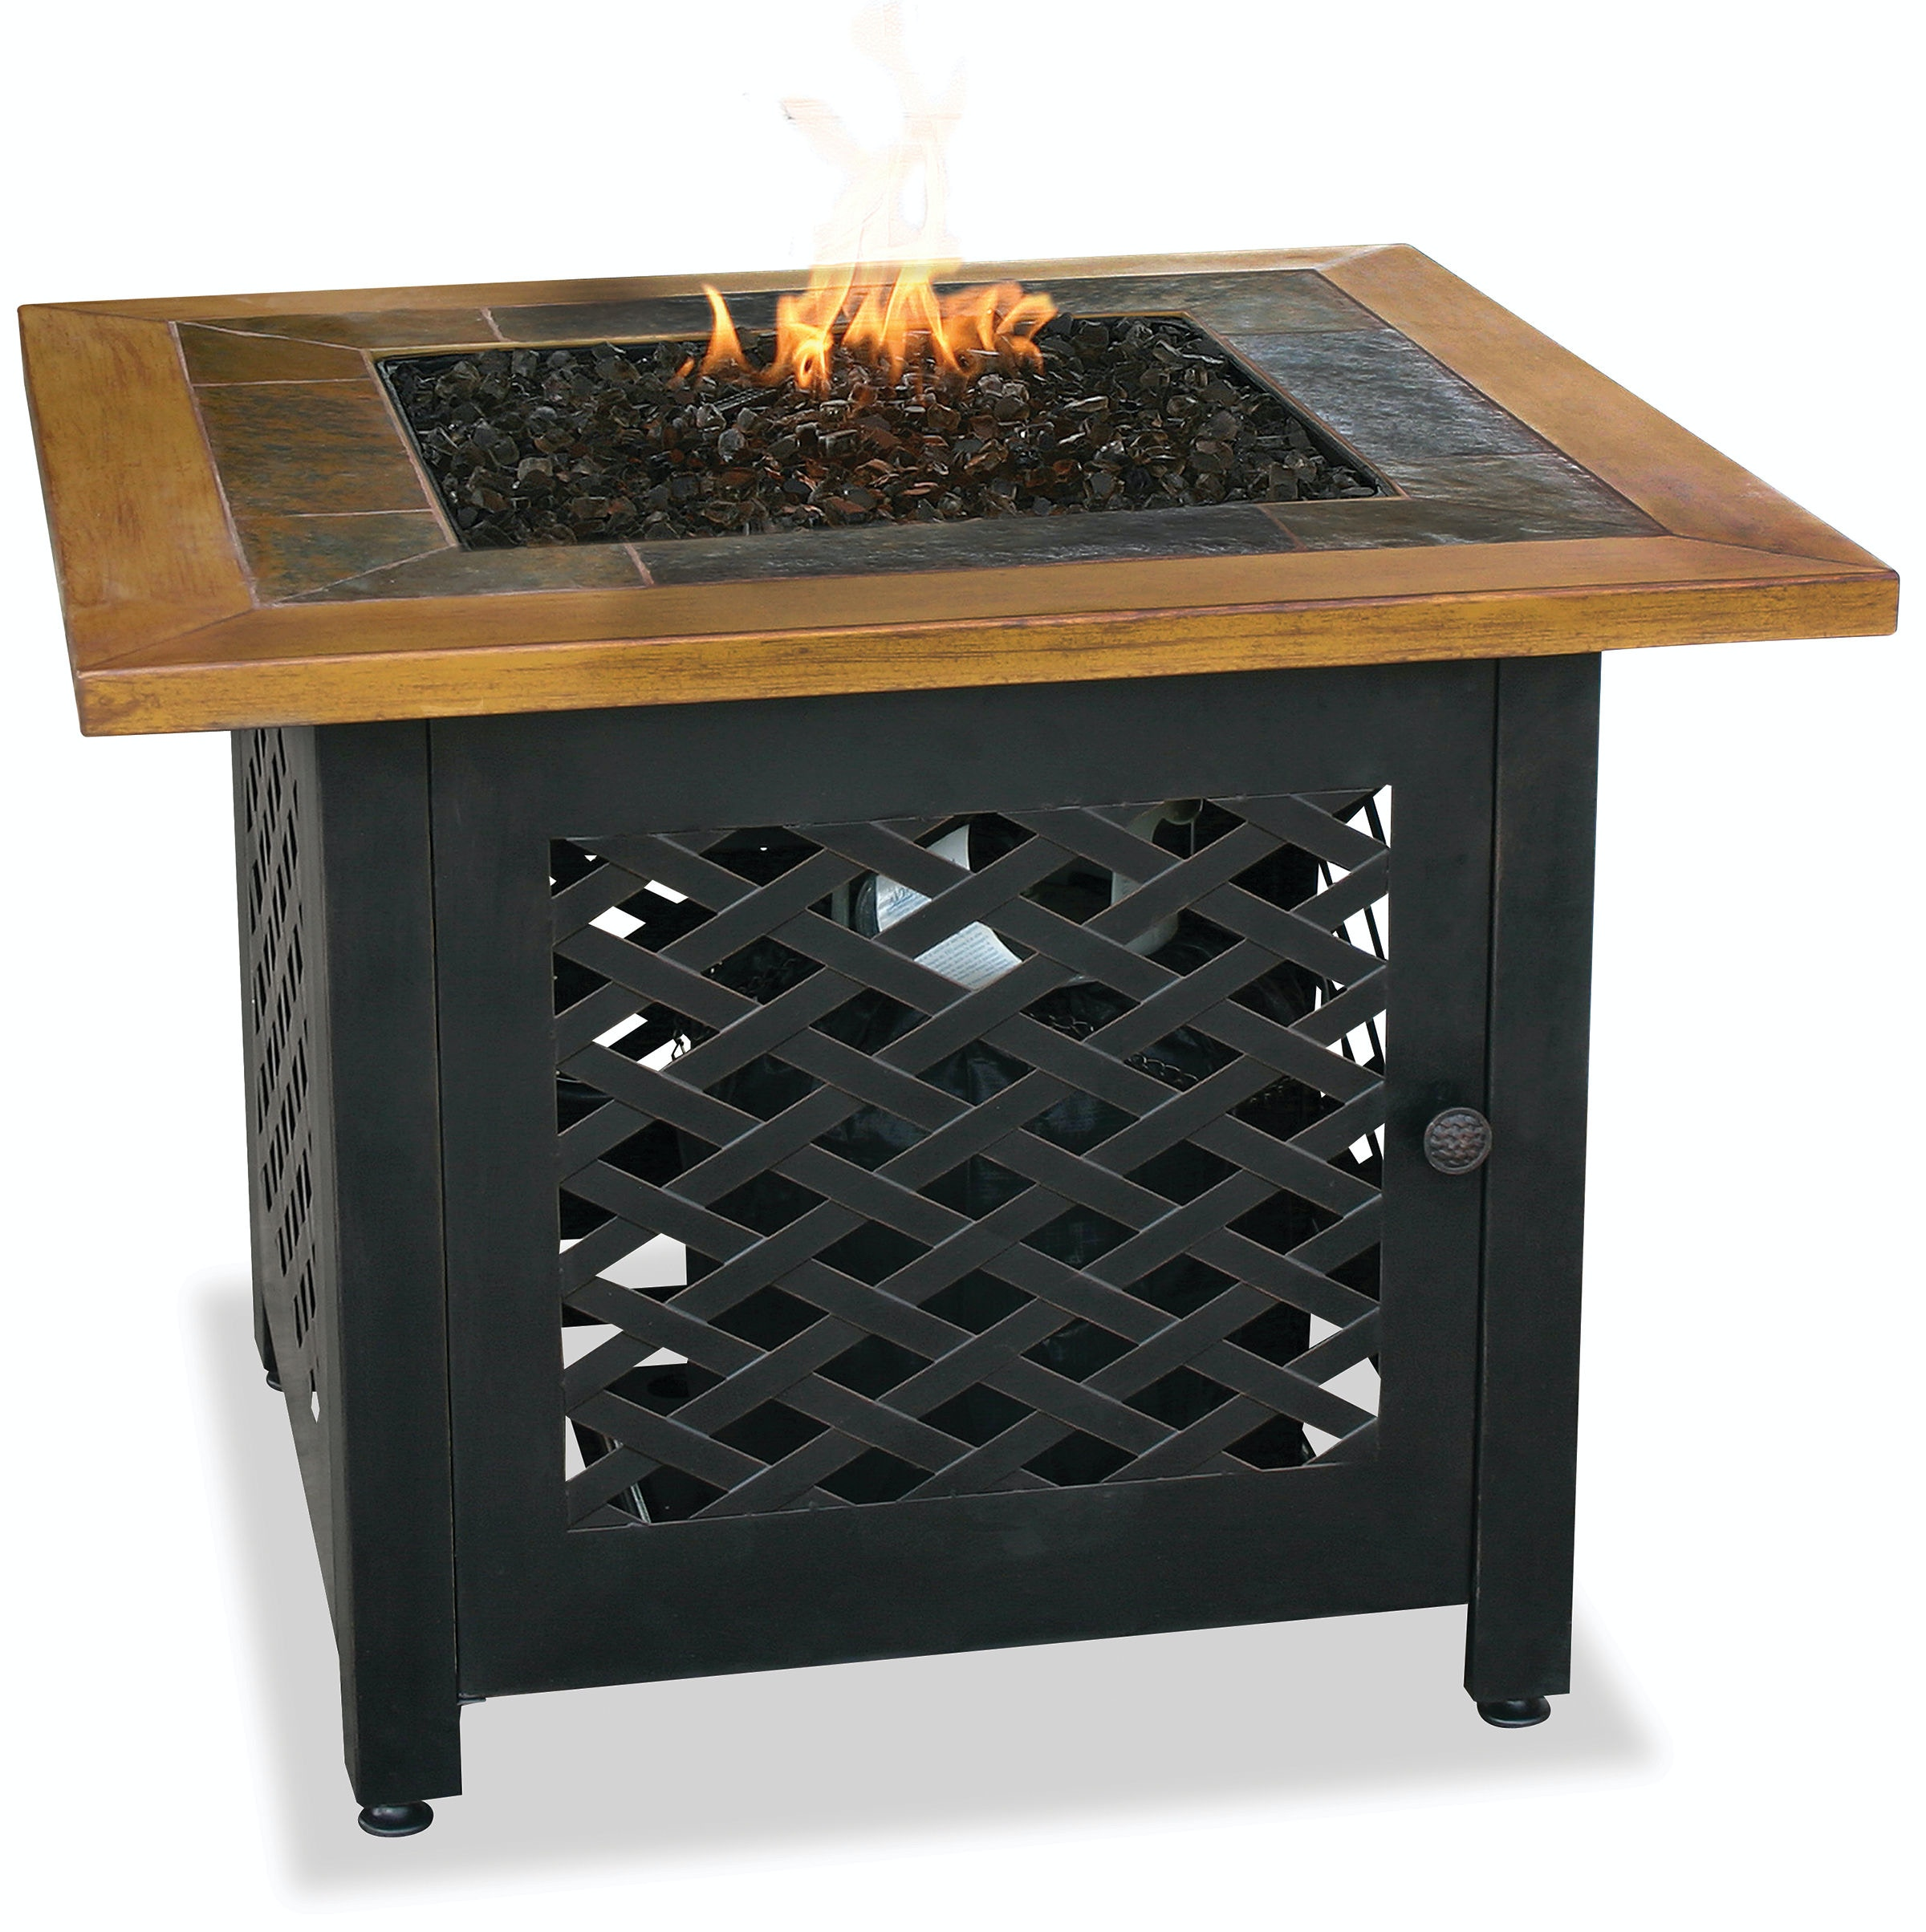 Fire House Casual Outdoor/Patio Gas Fire Pit A154 GAD1391SP At The Fire  House Casual Living Store